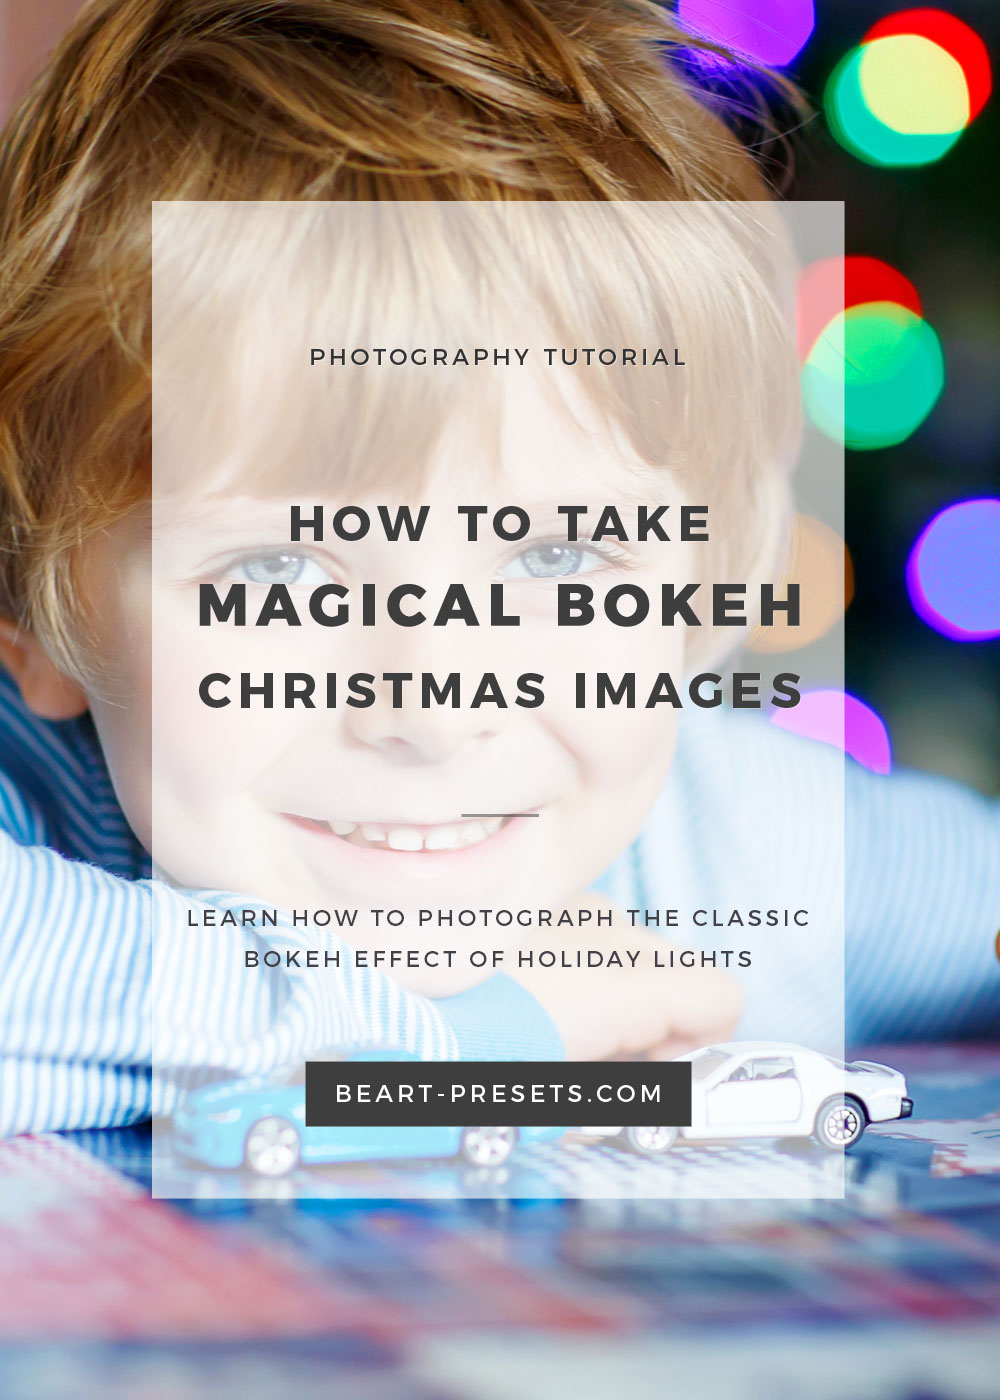 Learn how to photograph the magic bokeh effect of holiday Christmas lights